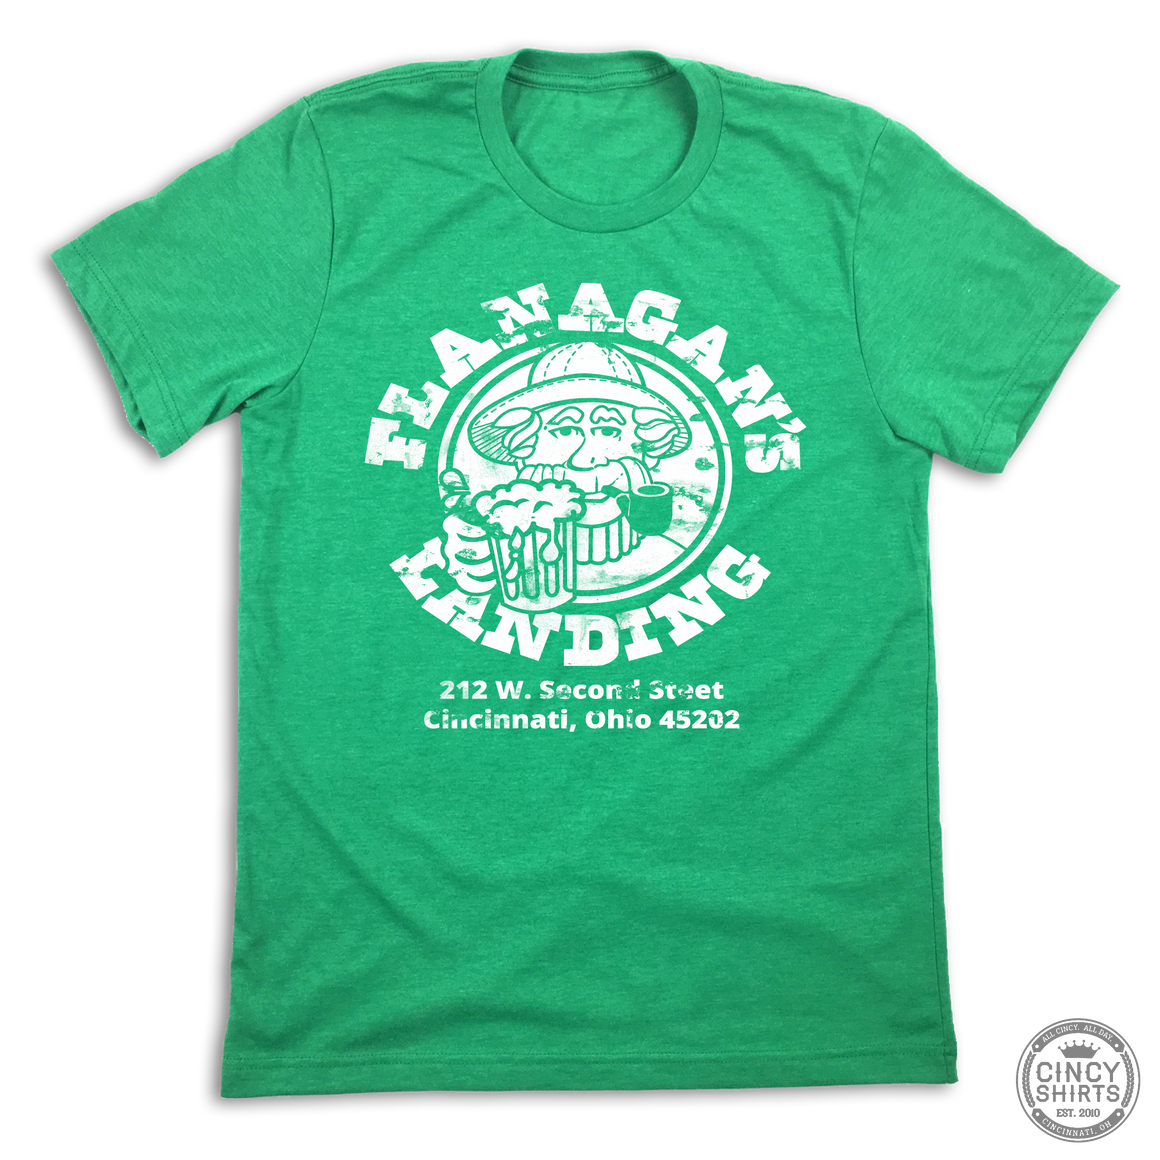 Flanagan's Landing - Cincy Shirts